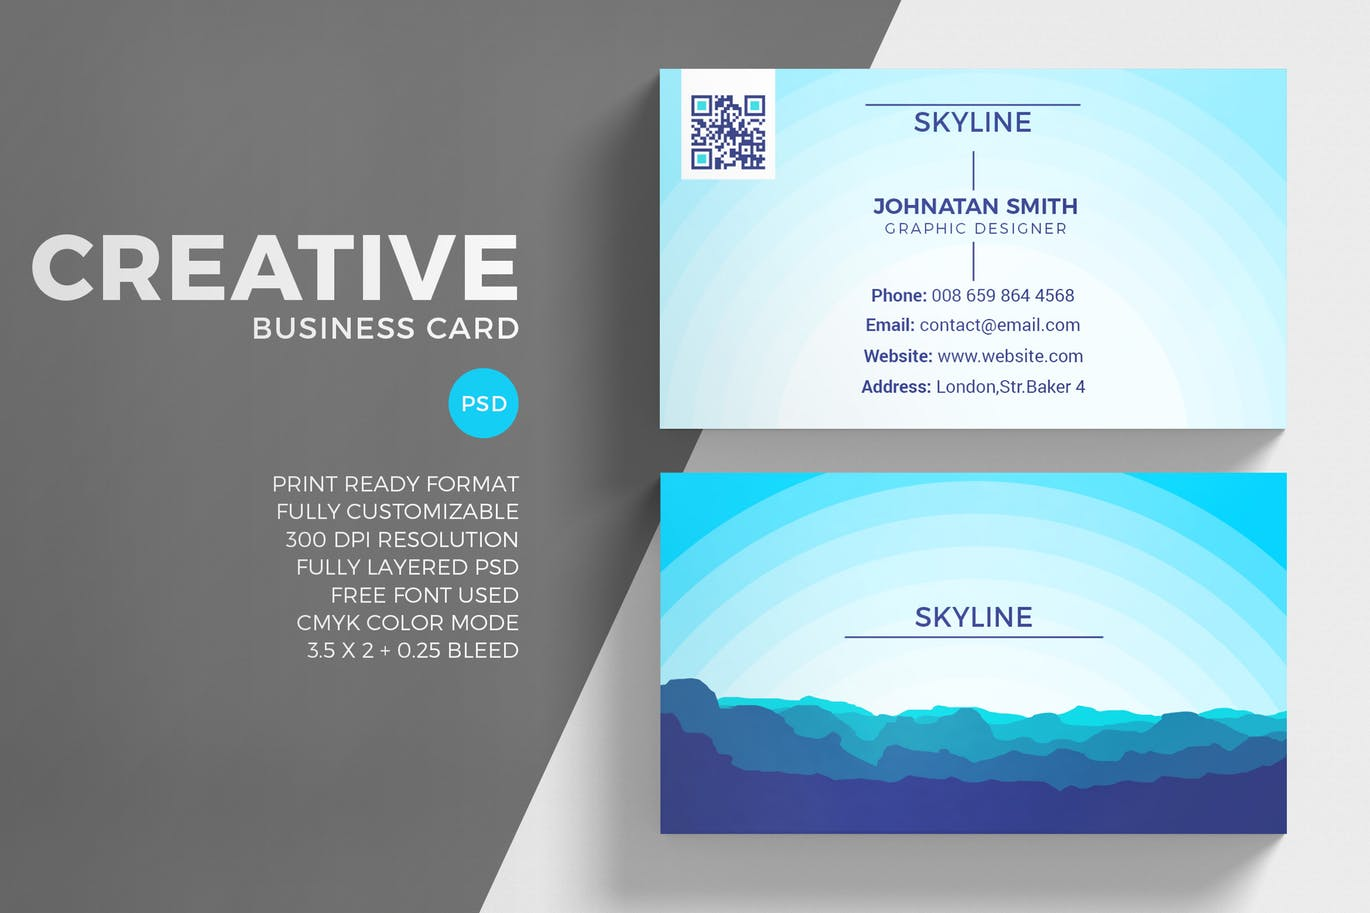 21+ Creative Business Card Templates for Architects  Decolore.Net With Regard To Web Design Business Cards Templates